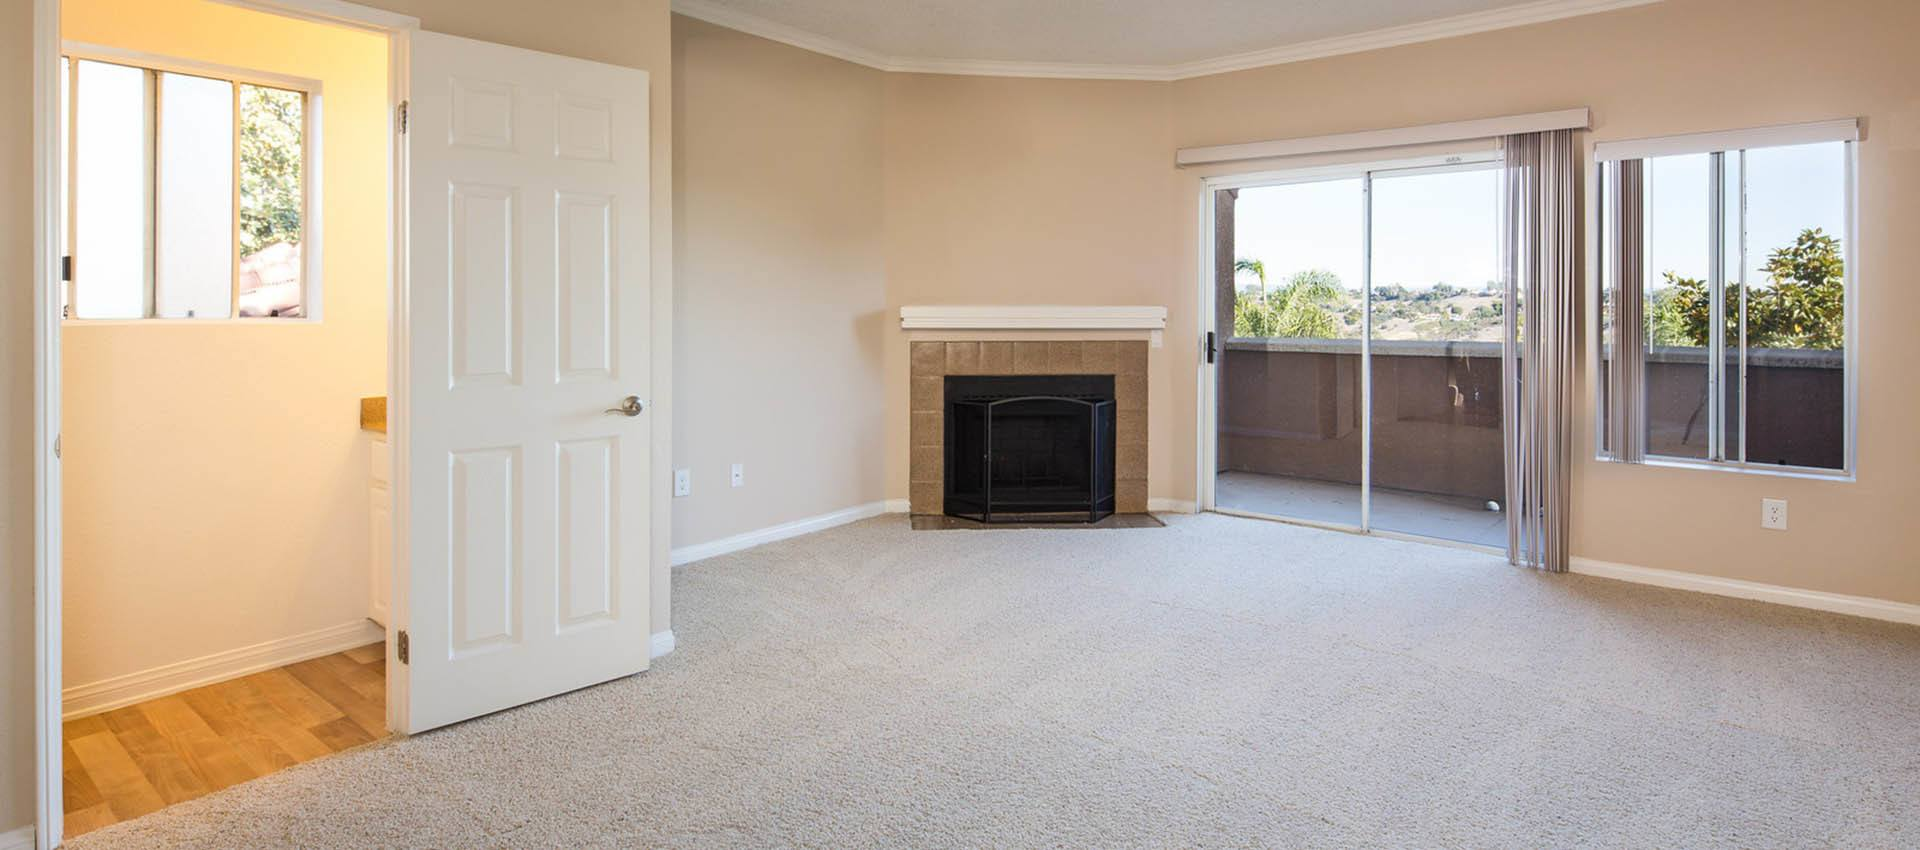 Spacious Living Room With Fireplace at Niguel Summit Condominium Rentals in Laguna Niguel, CA